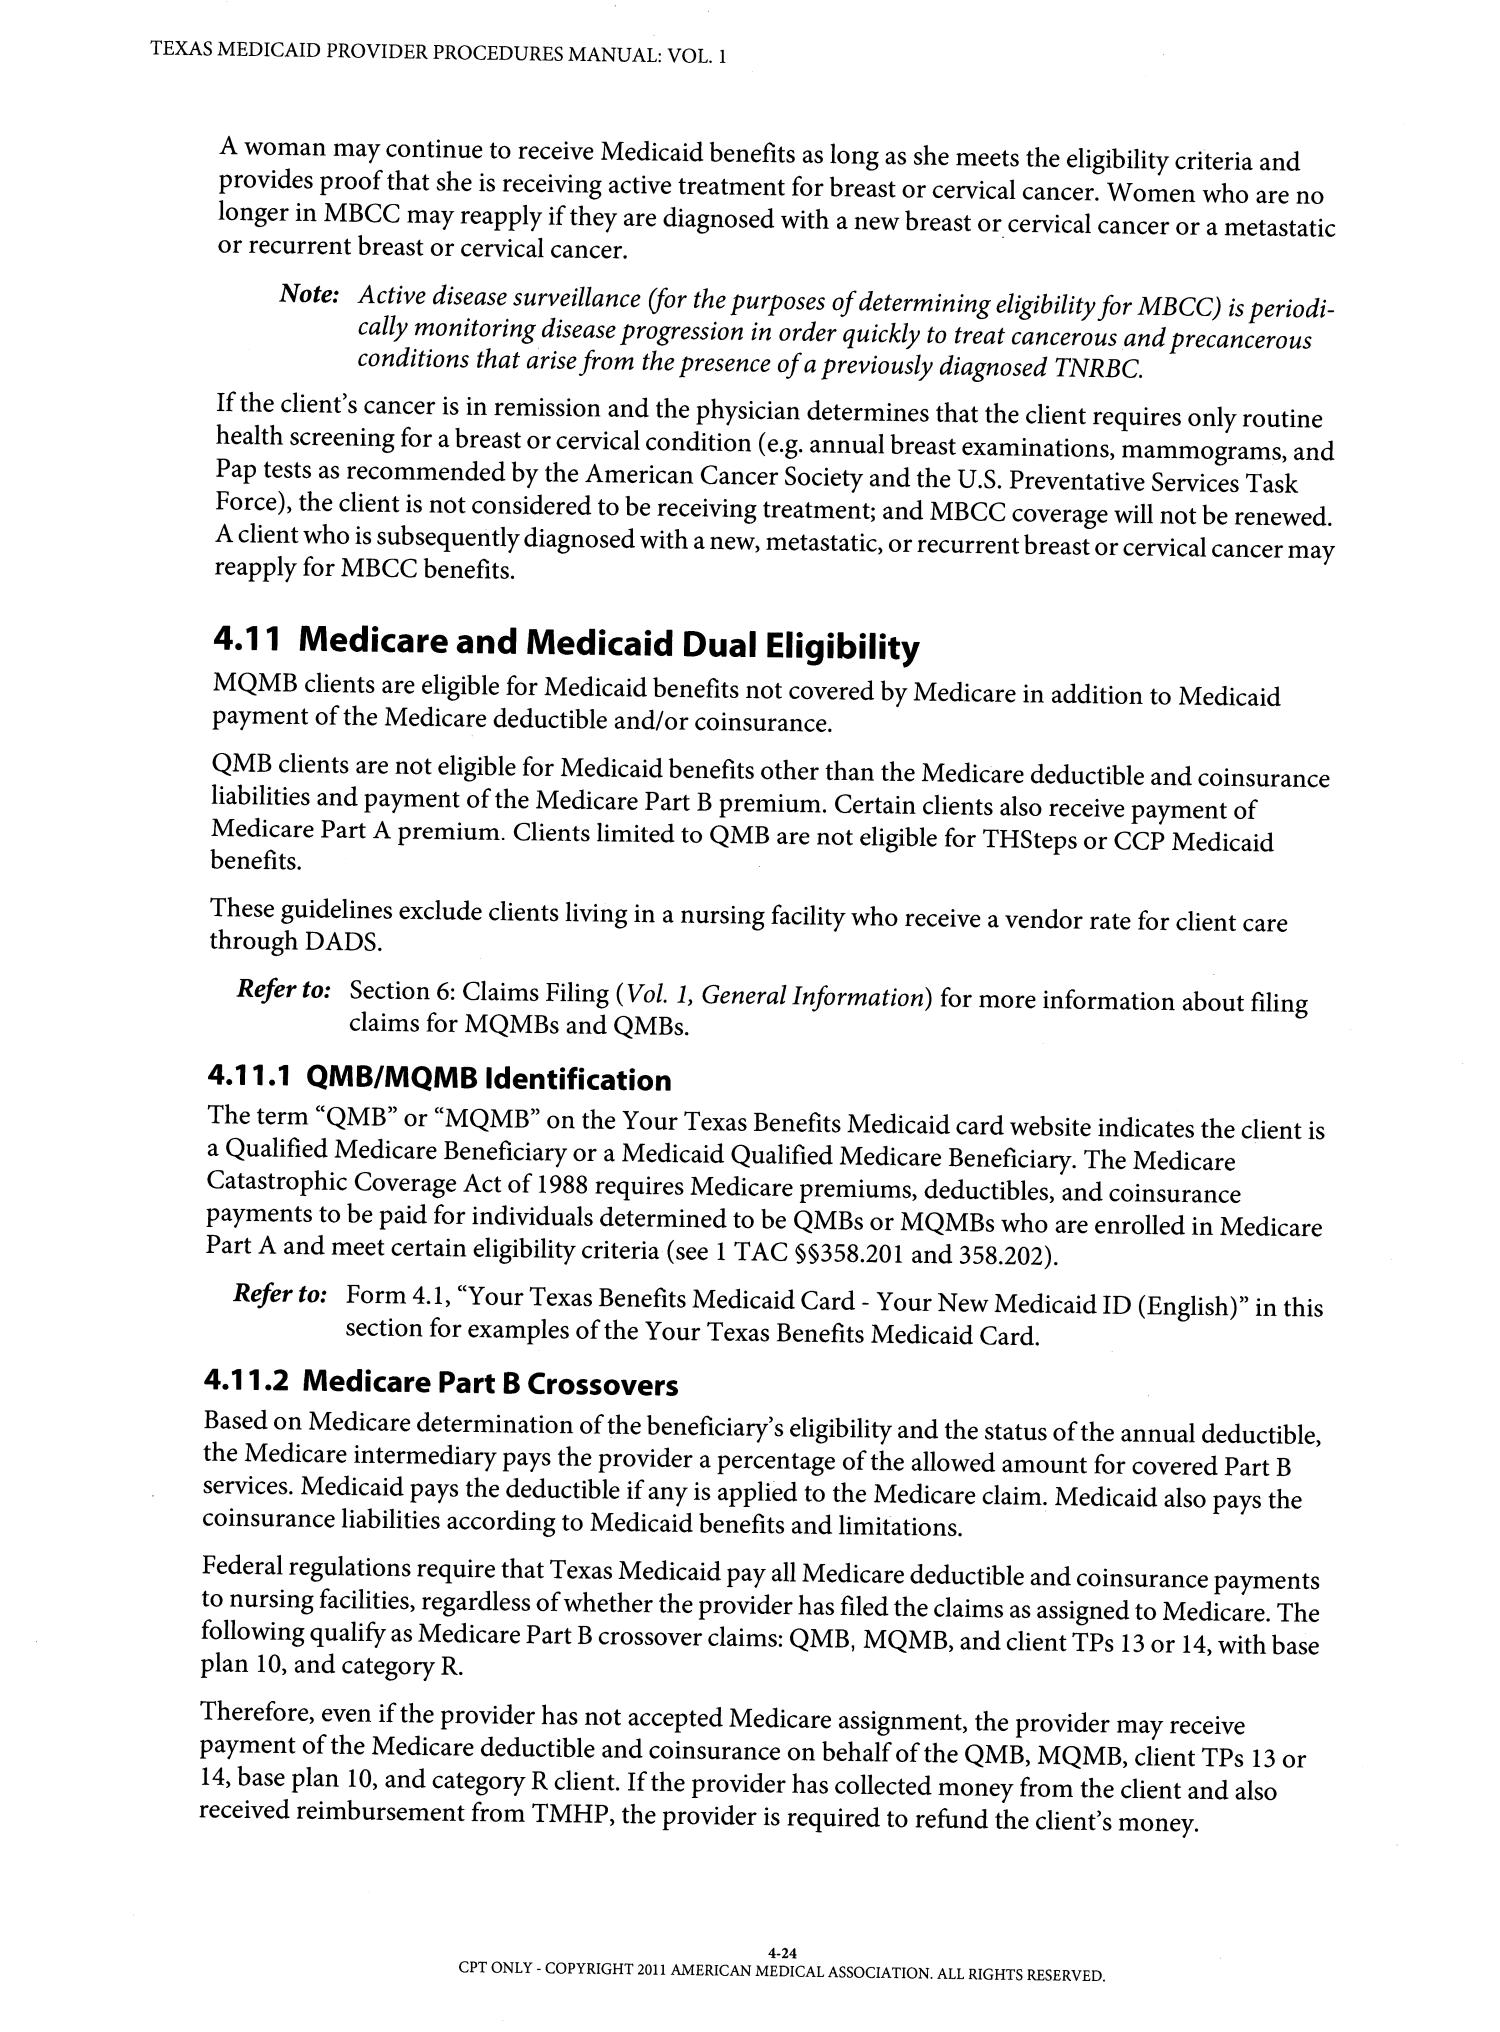 mqmb Texas Medicaid Provider Procedures Manual: Volume 1, General ...